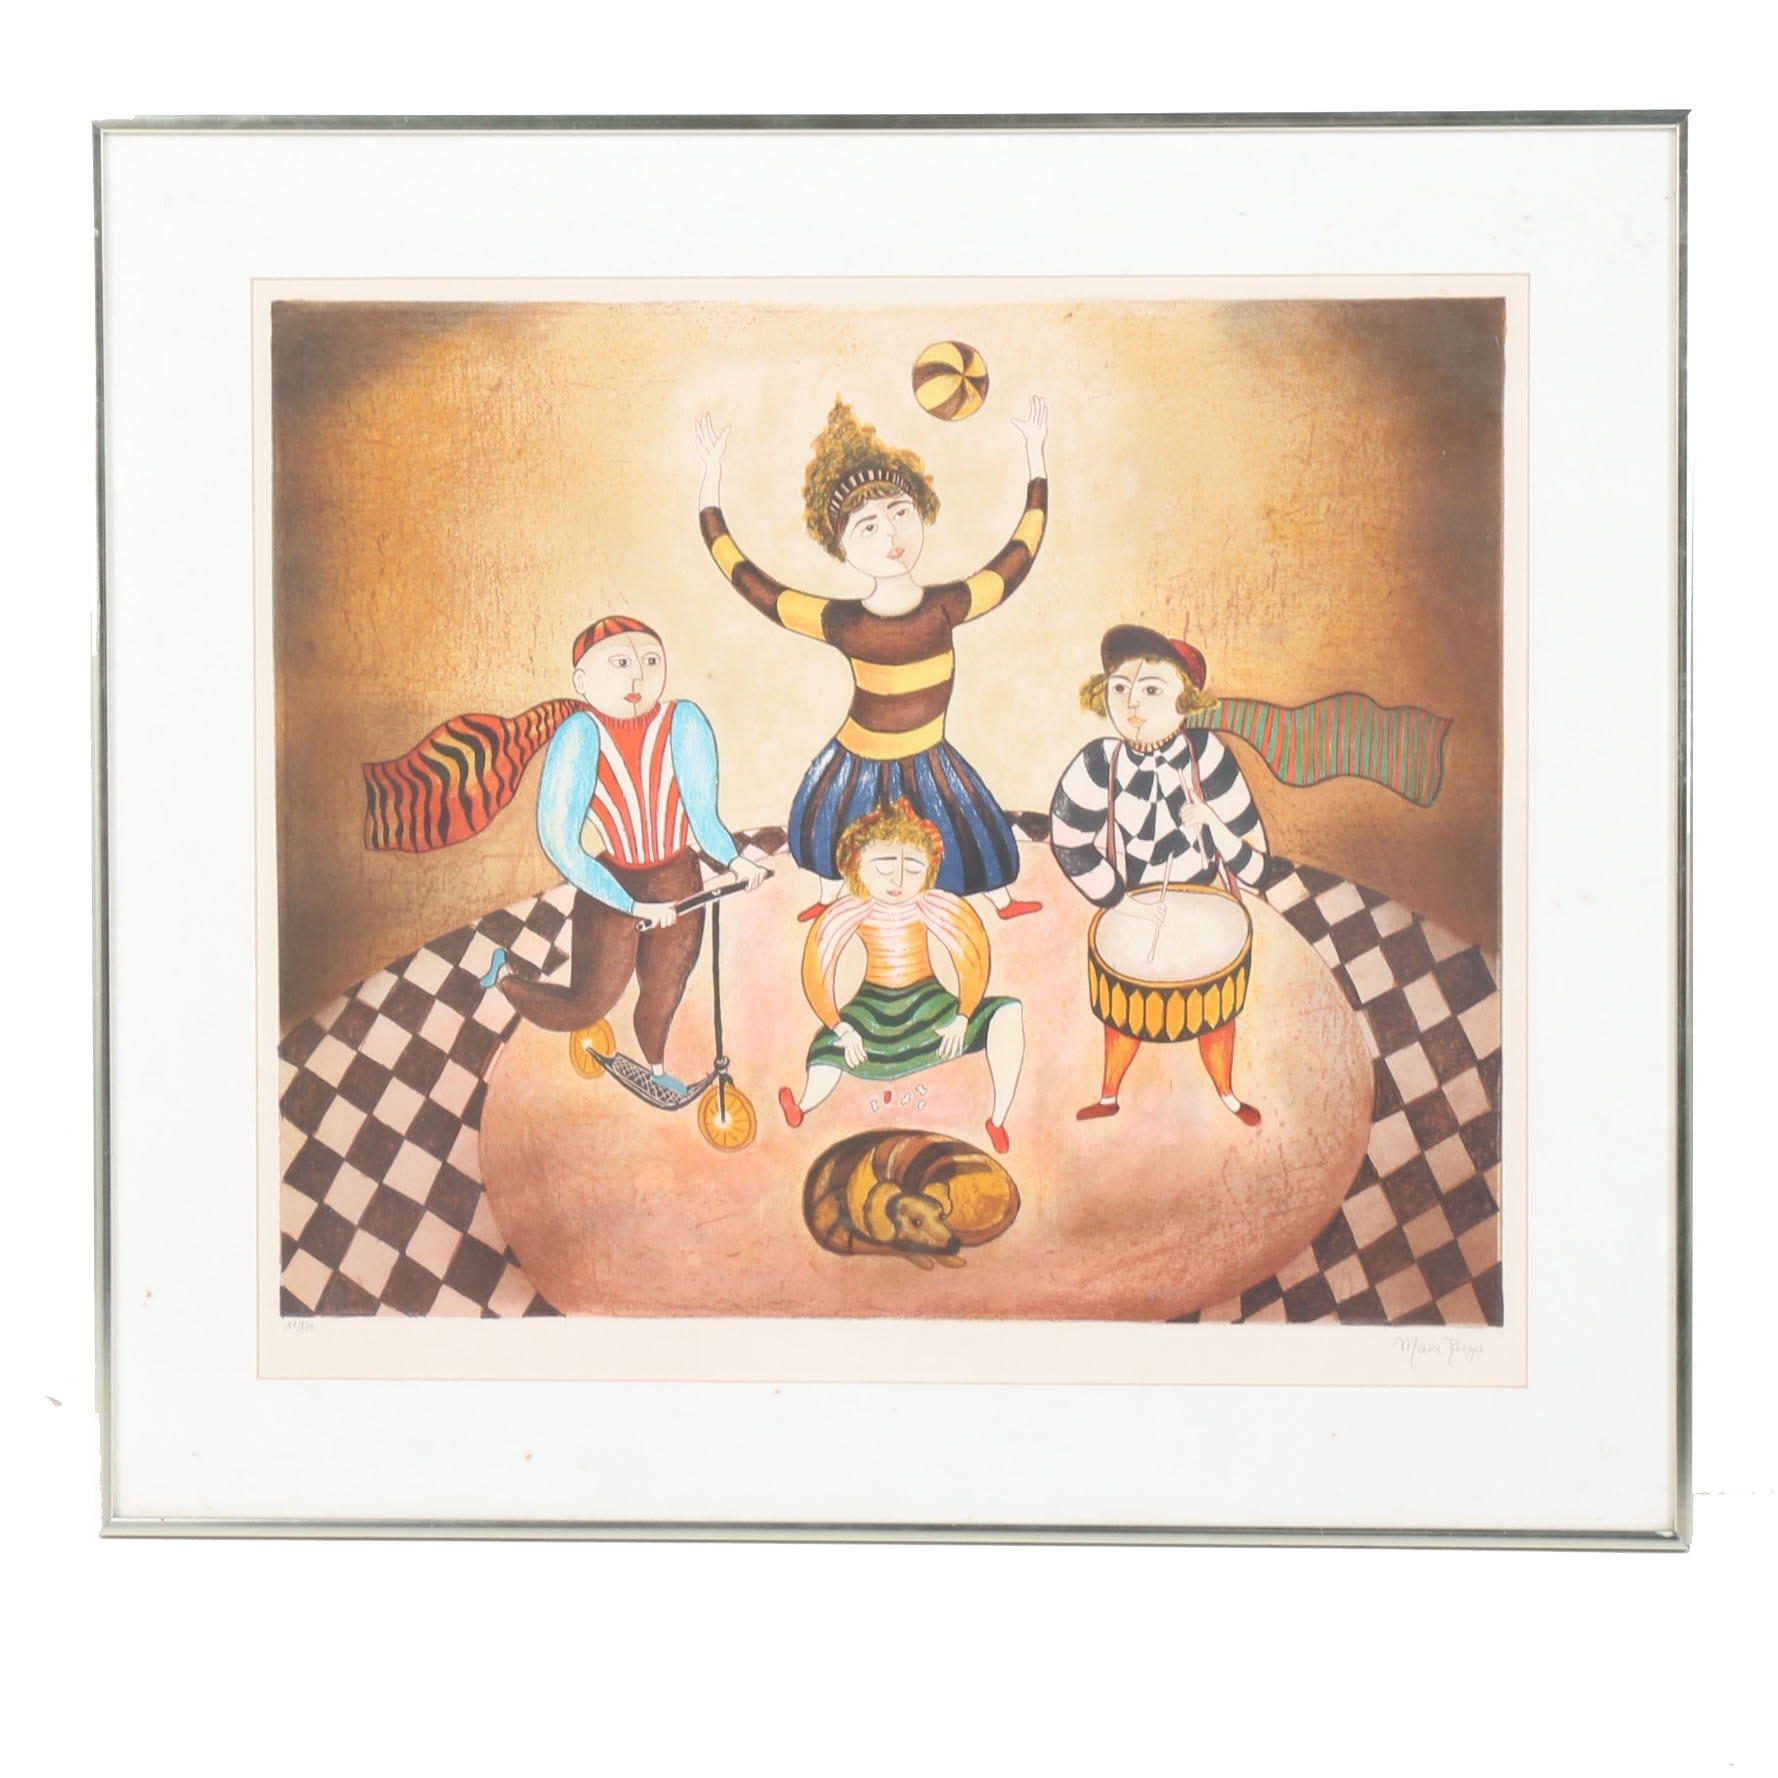 Maia Berger Limited Edition Offset Lithograph